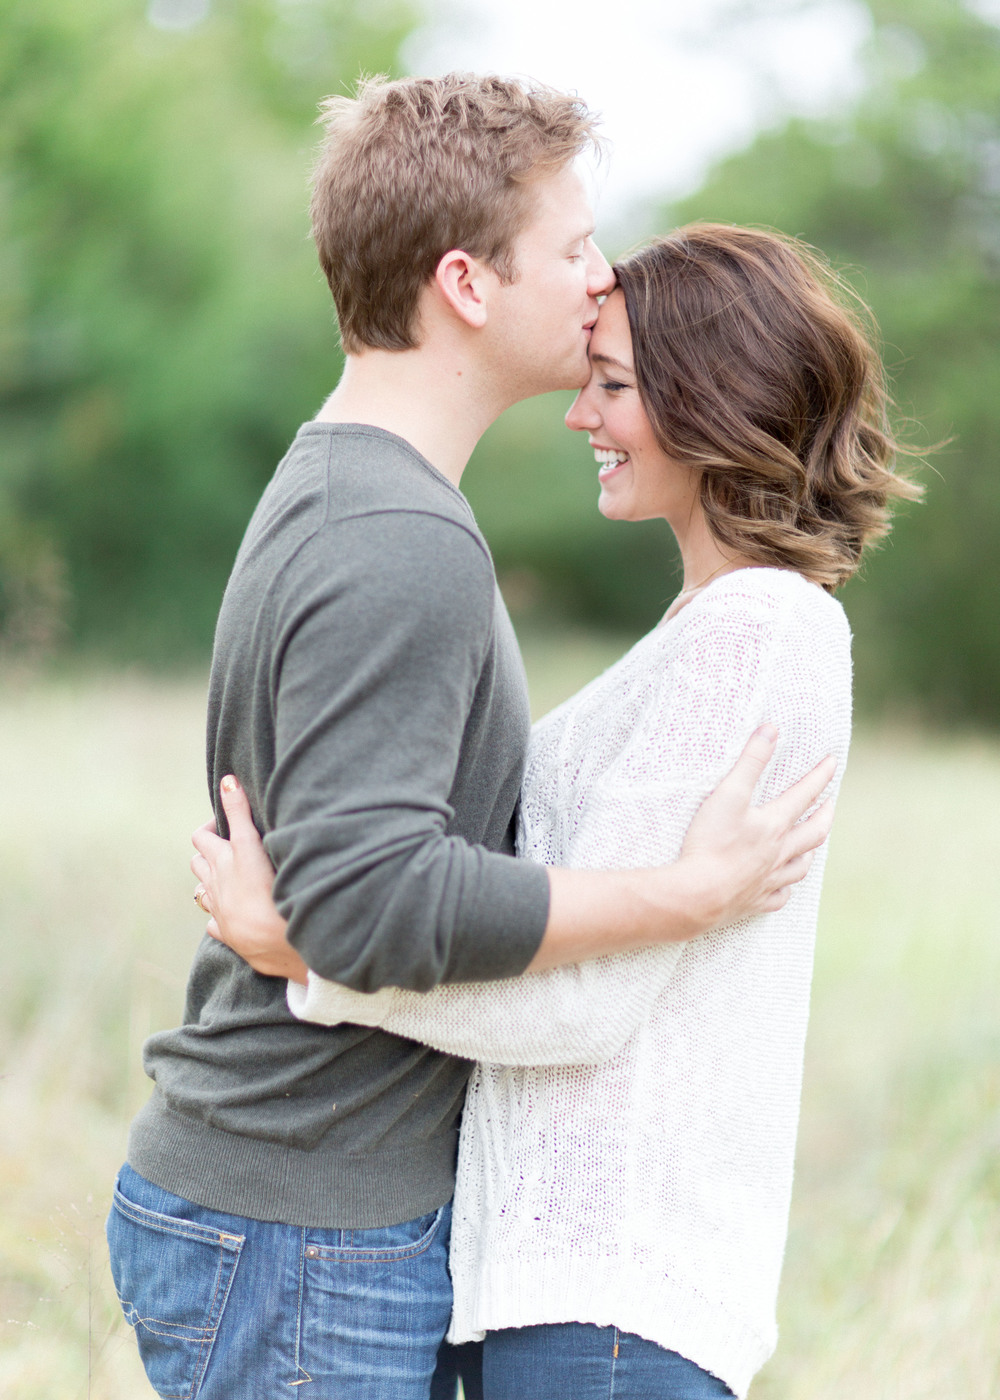 Sarah Best Photography - Anna & Jack Lifestyle Session-7.jpg